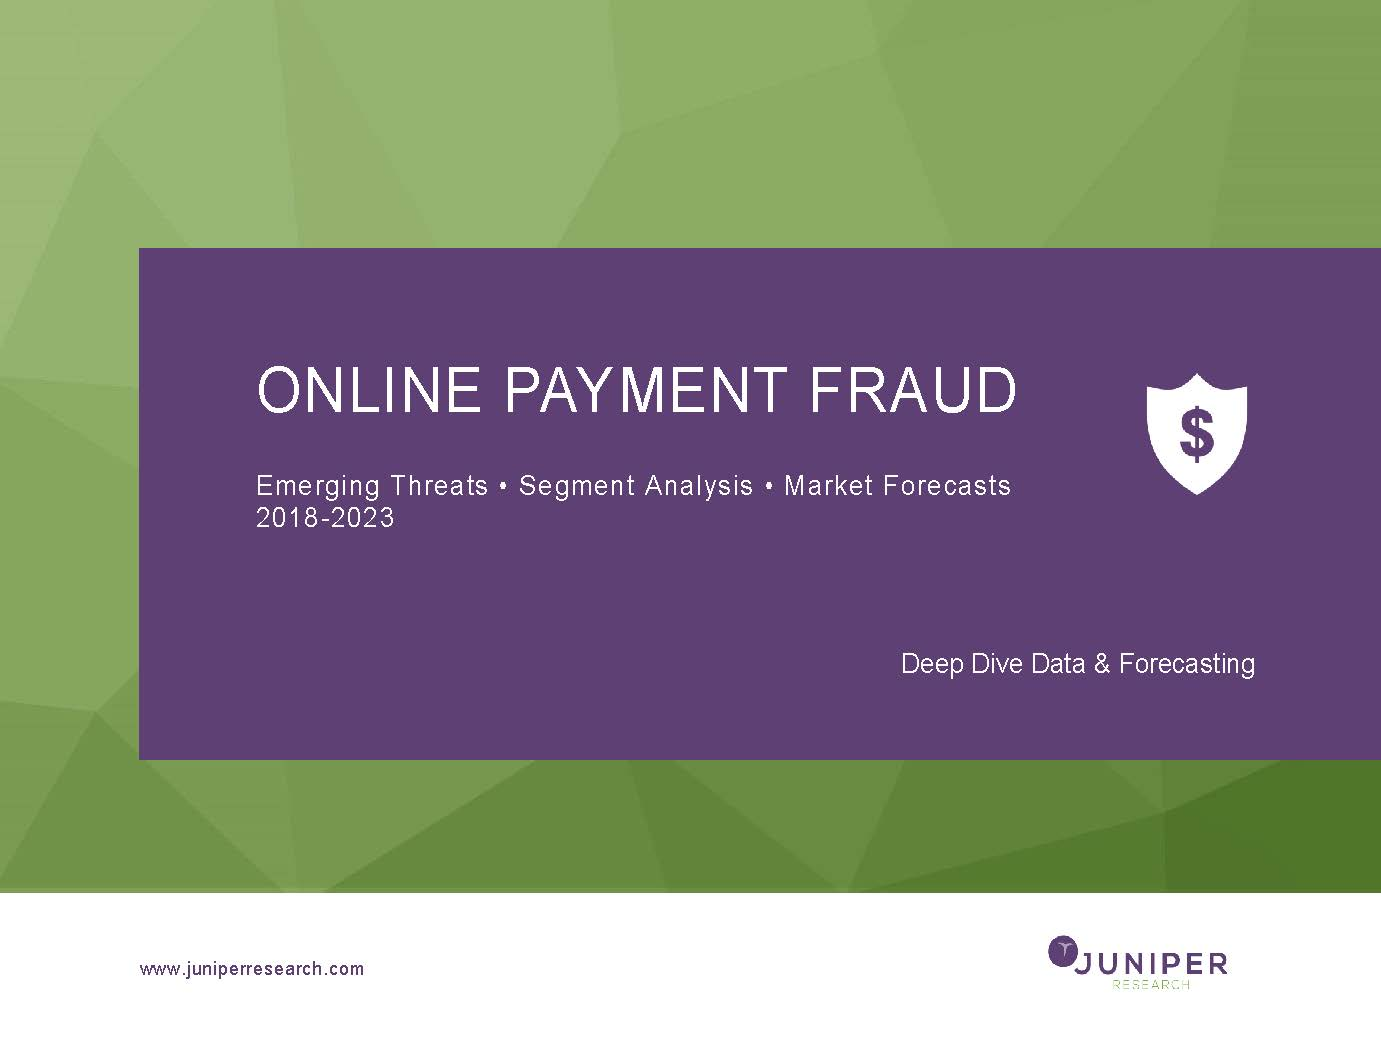 Online Payment Fraud: Deep Dive Data & Forecasting 2018-2023